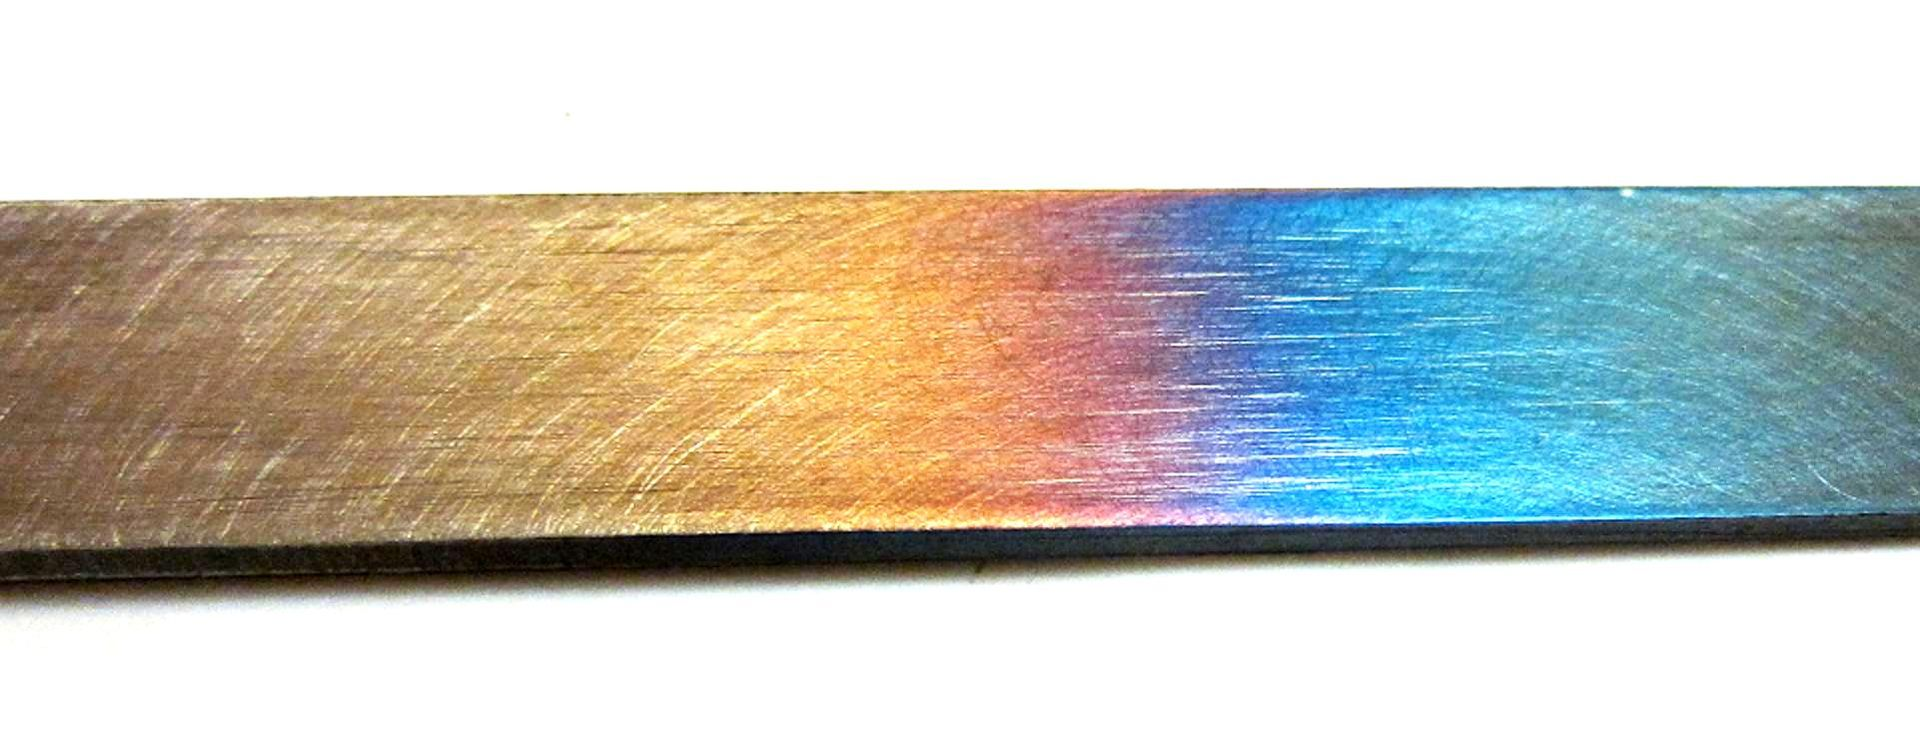 Tempering color phases of steel (Wikipedia).